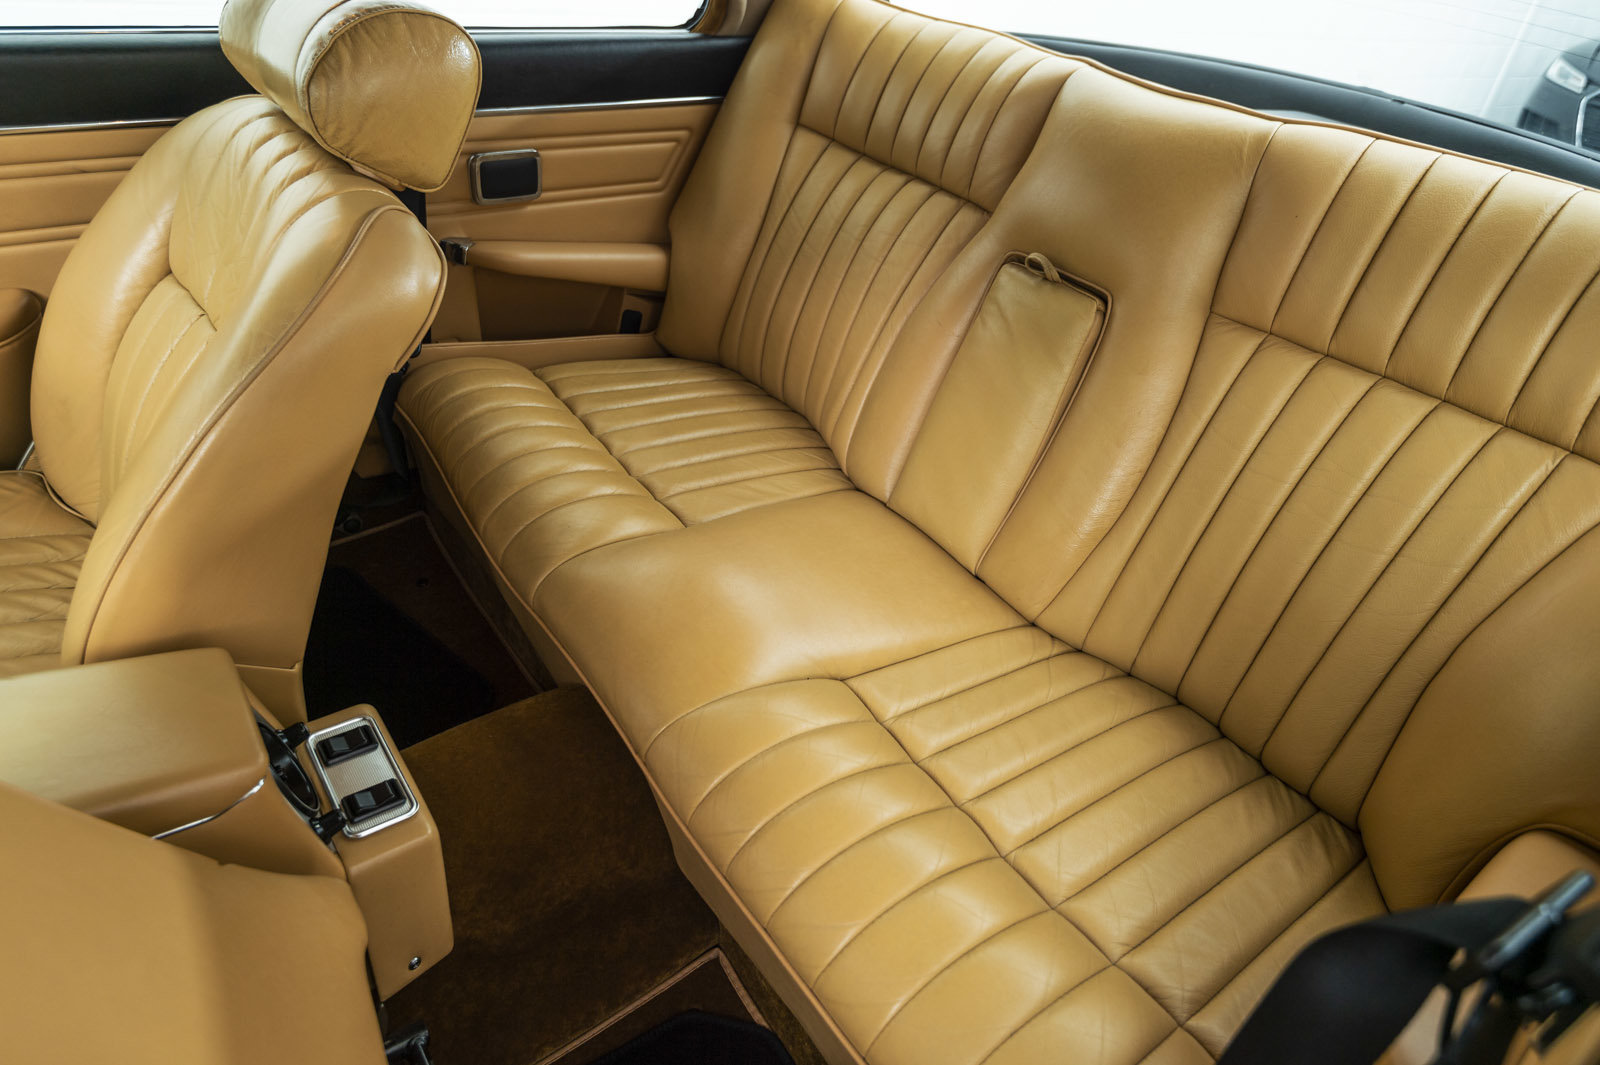 1977 DAMILER DOUBLE SIX COUPE 5.3 V12 - 33,487 mls For Sale (picture 6 of 6)